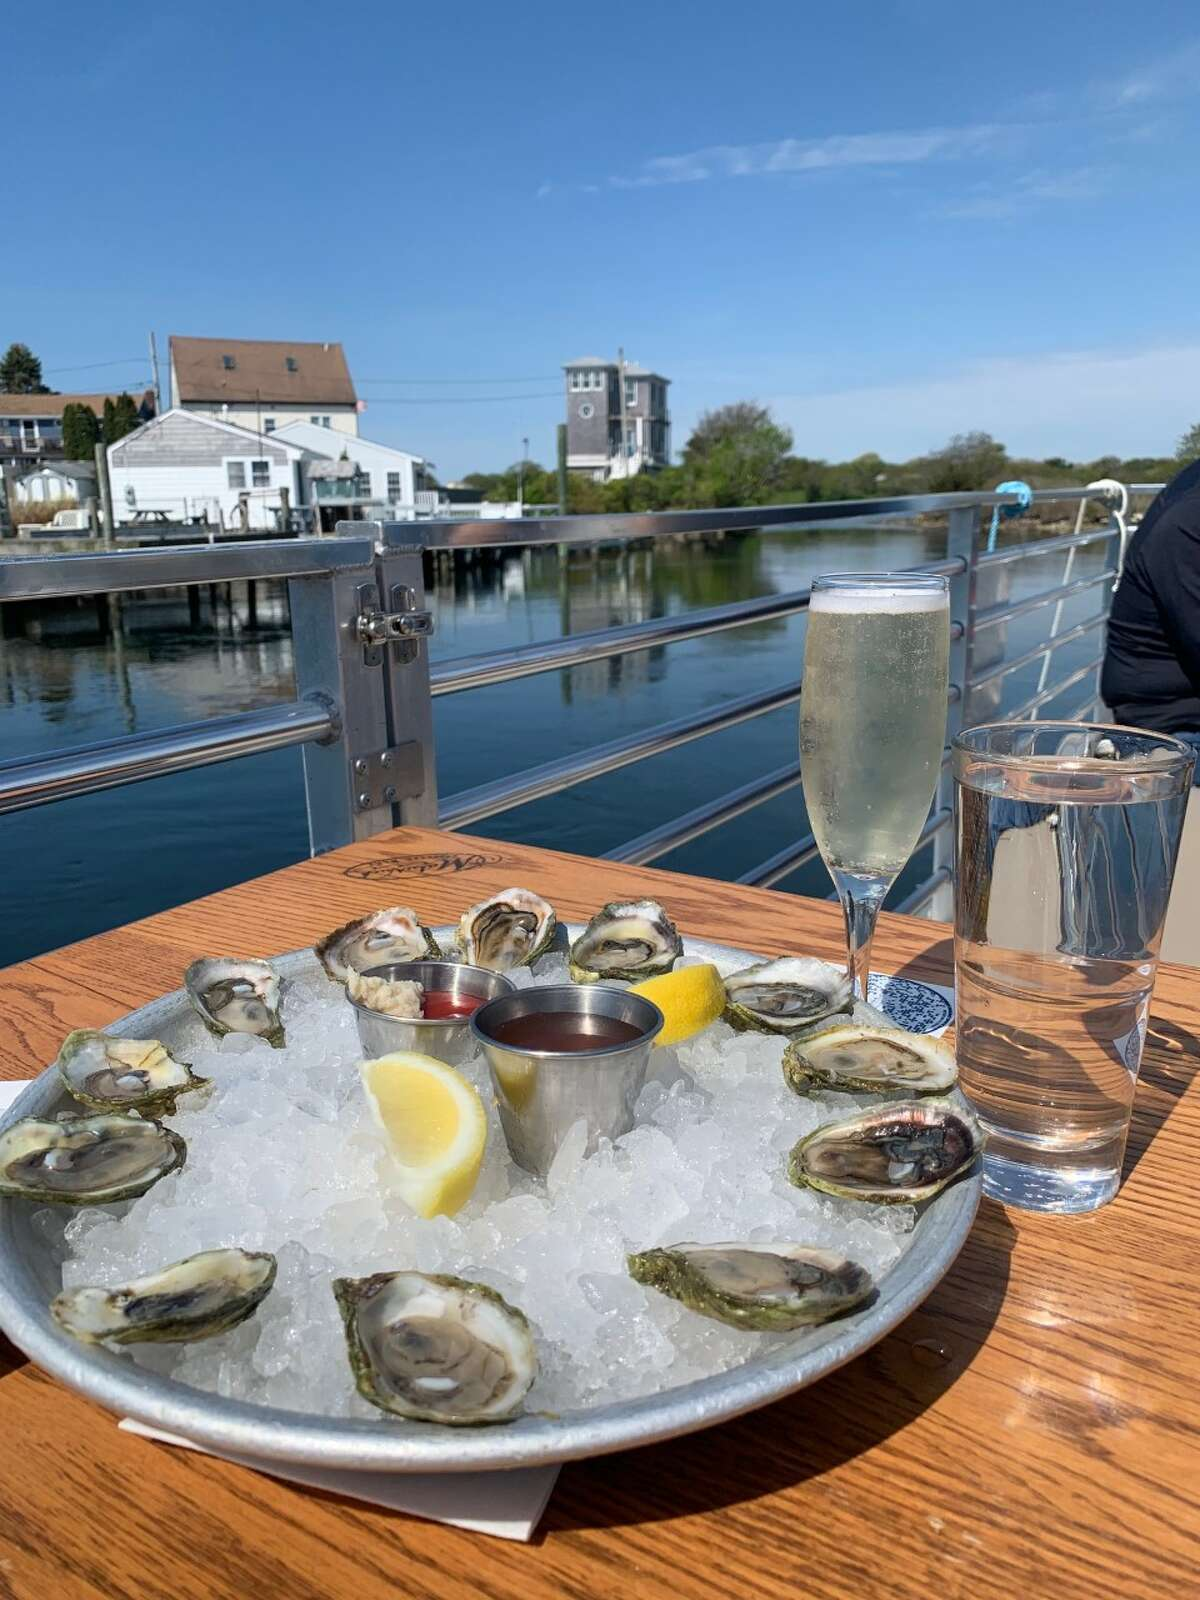 Matunuck Oyster Bar in South Kingstown, Rhode Island, offers a tour of the oyster farming process. Lunch afterward featured passion fruit oysters.